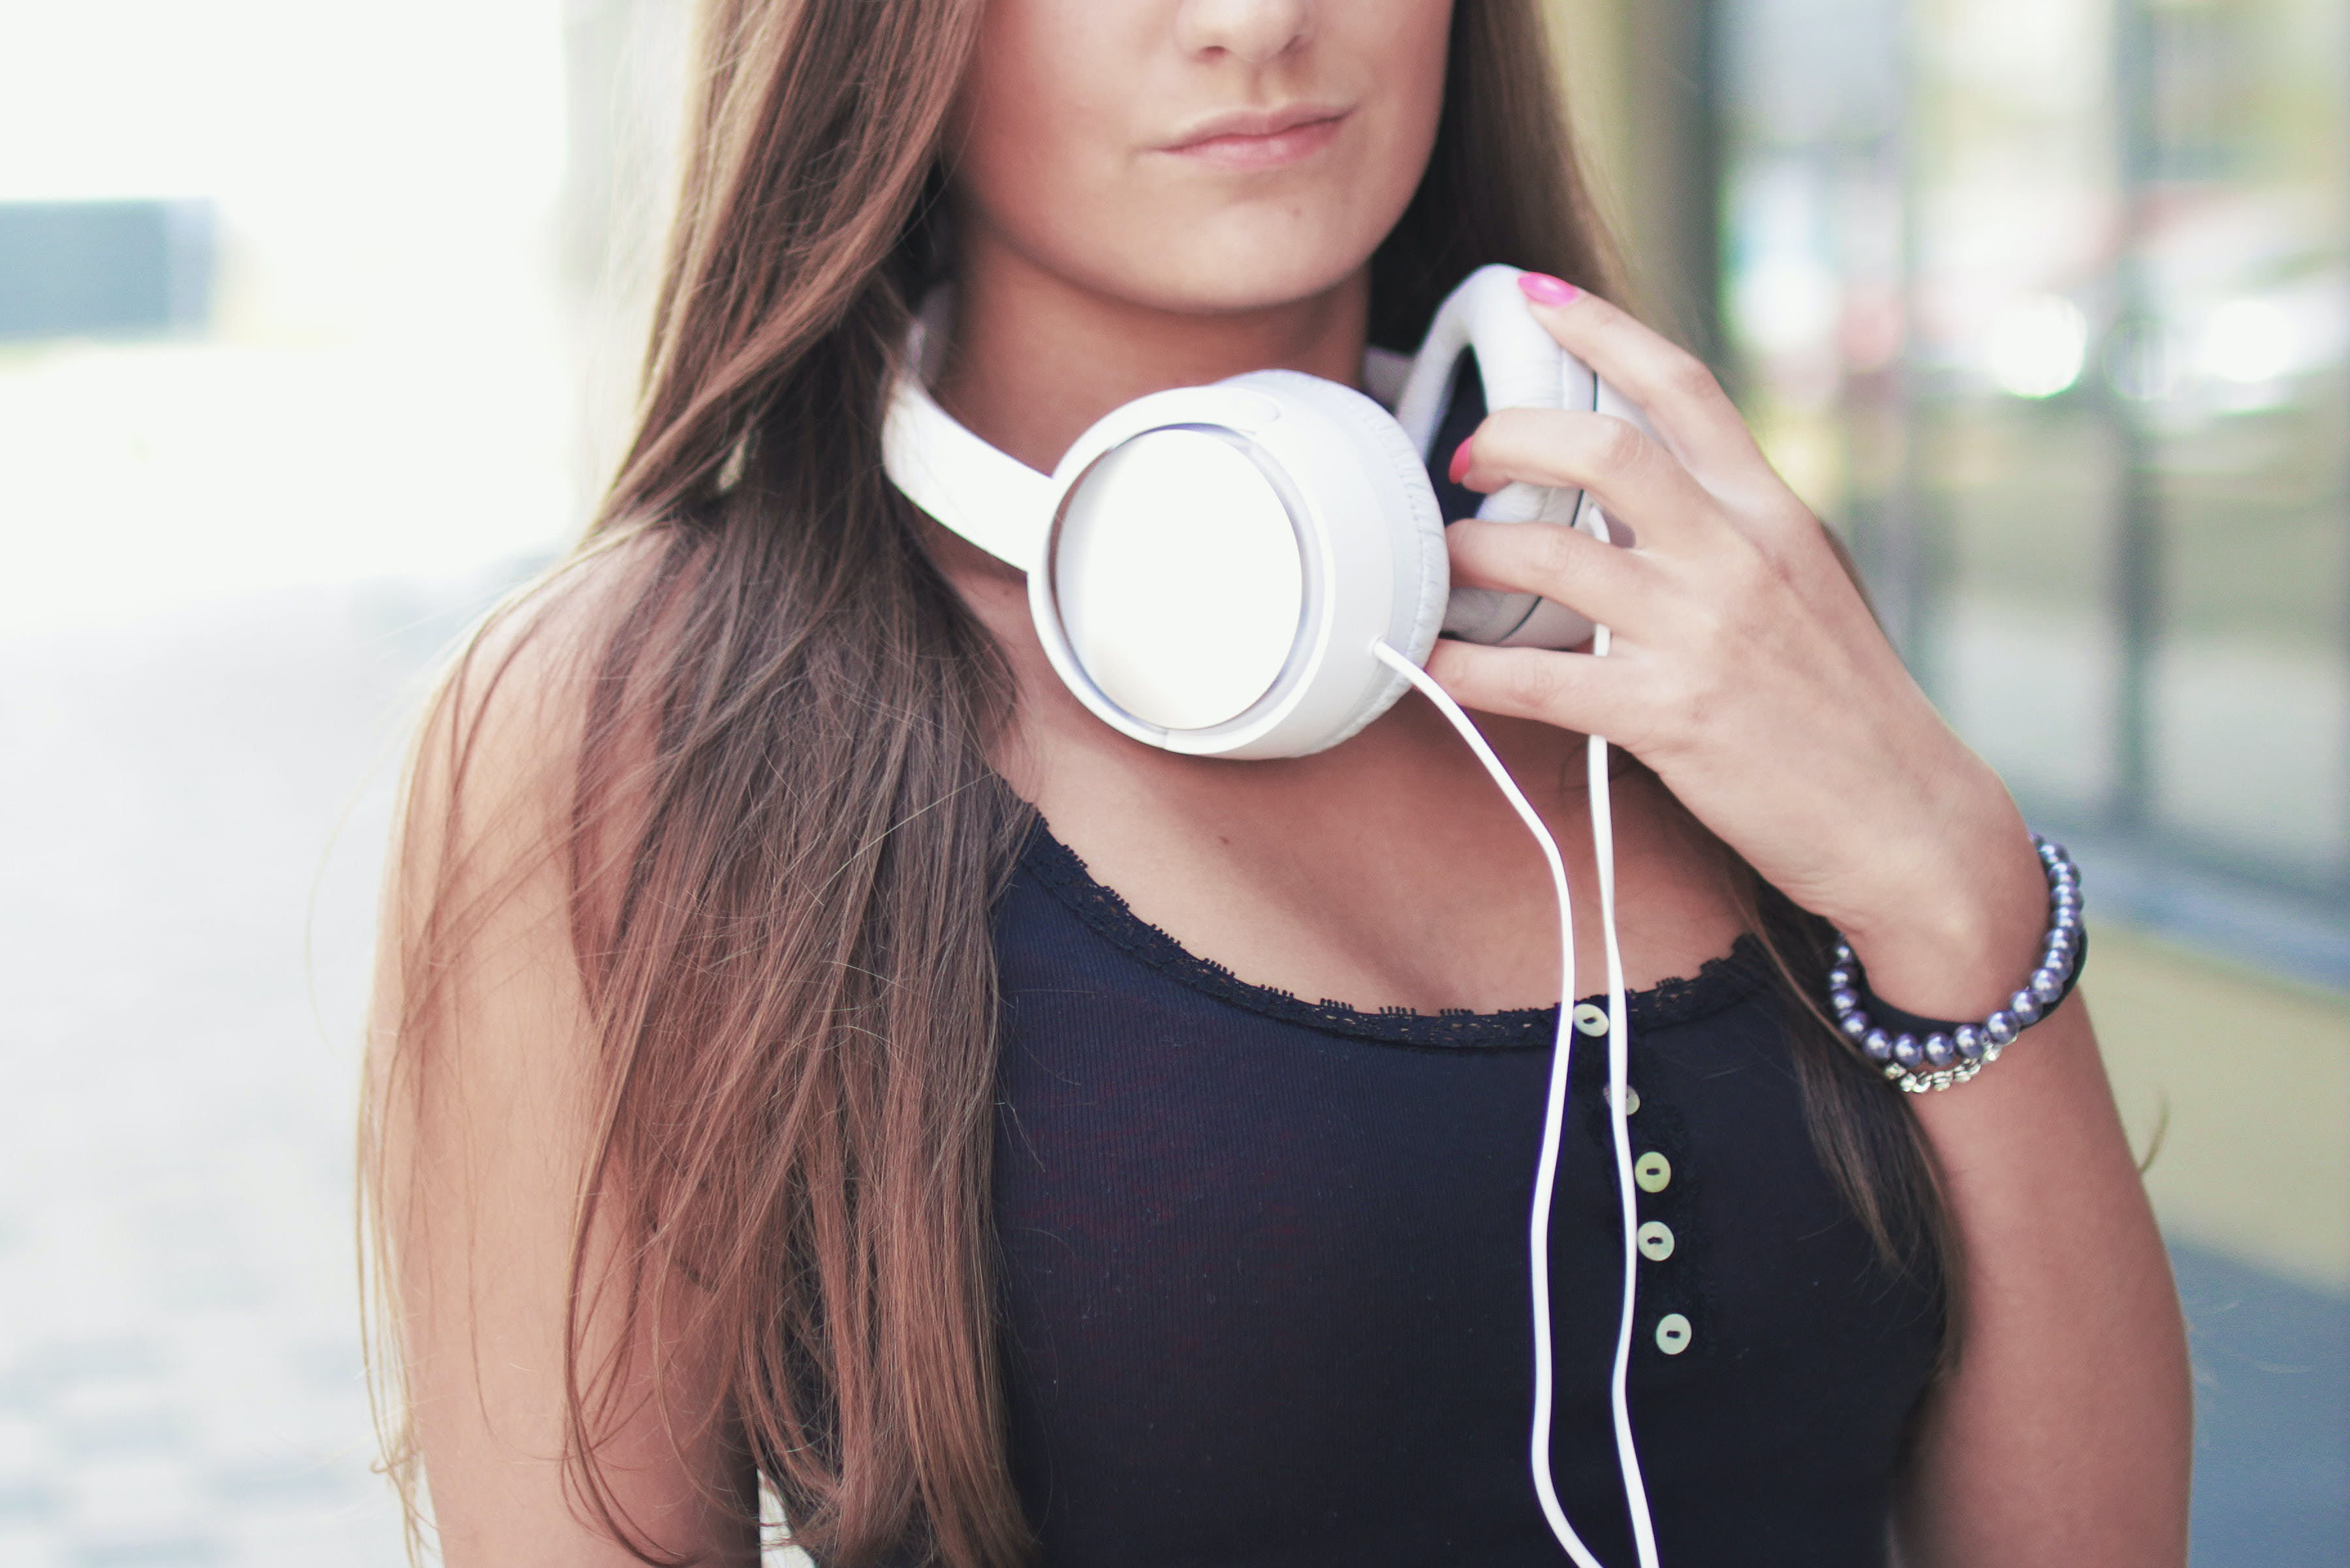 Portrait Photography of Woman Holding Headphones